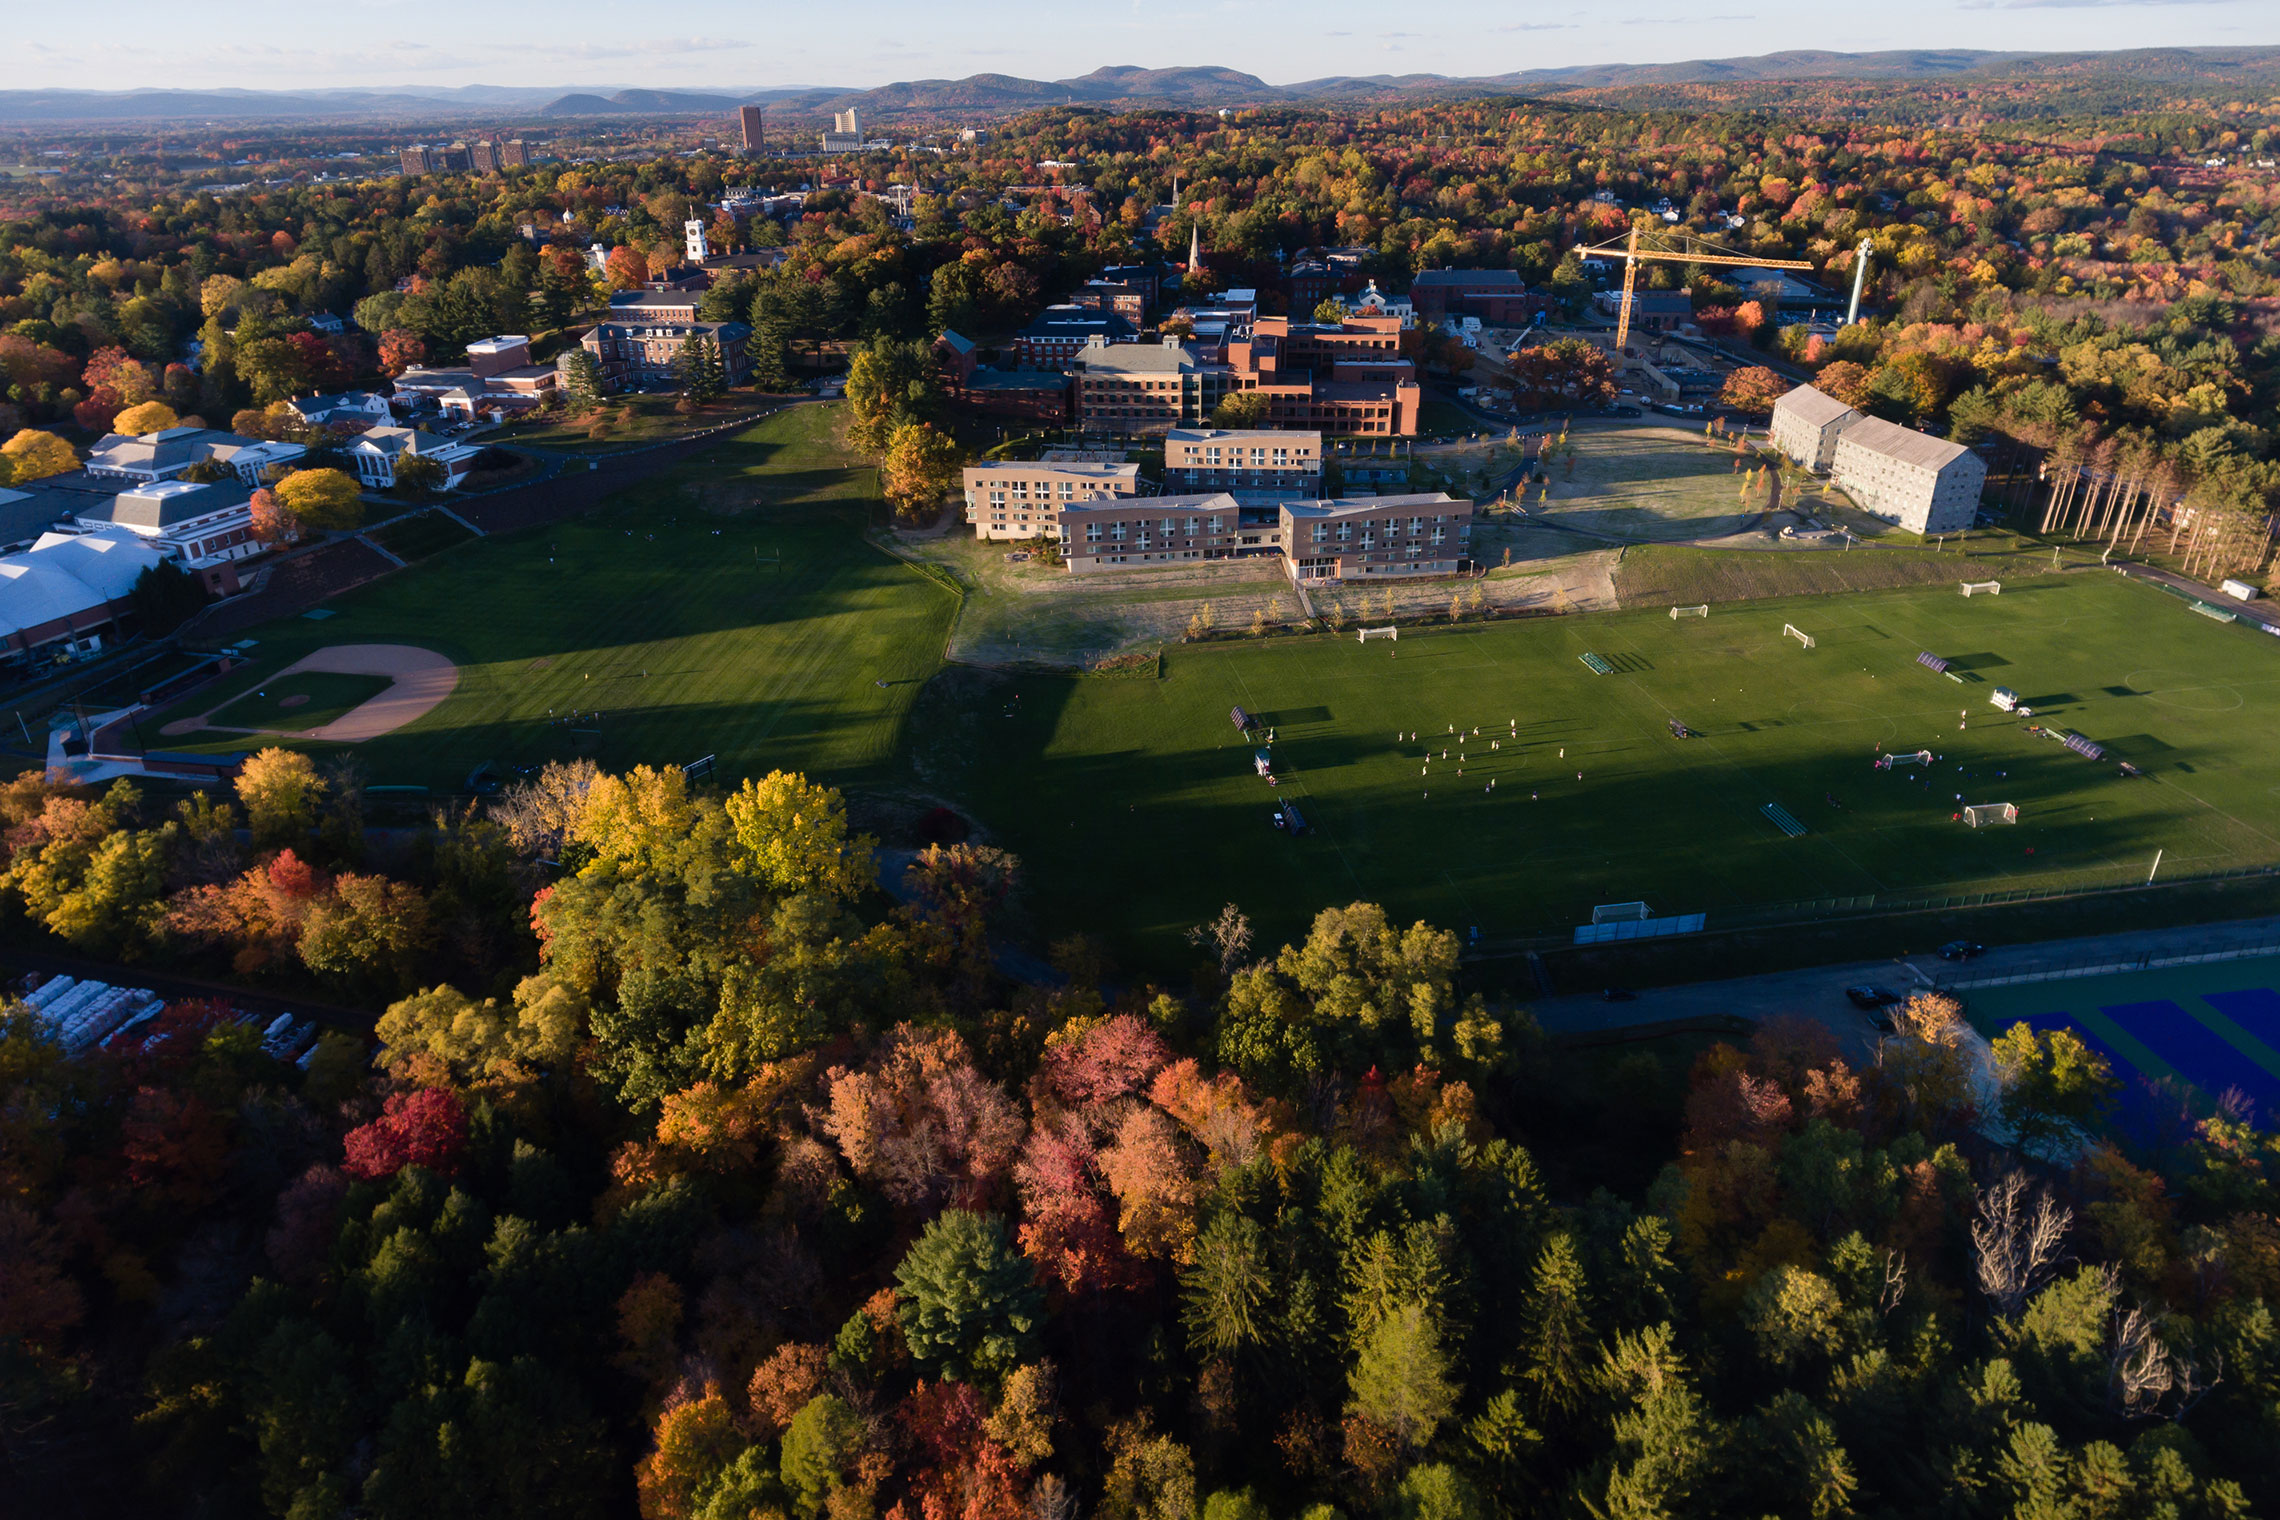 Aerial view of Amherst College campus in autumn.